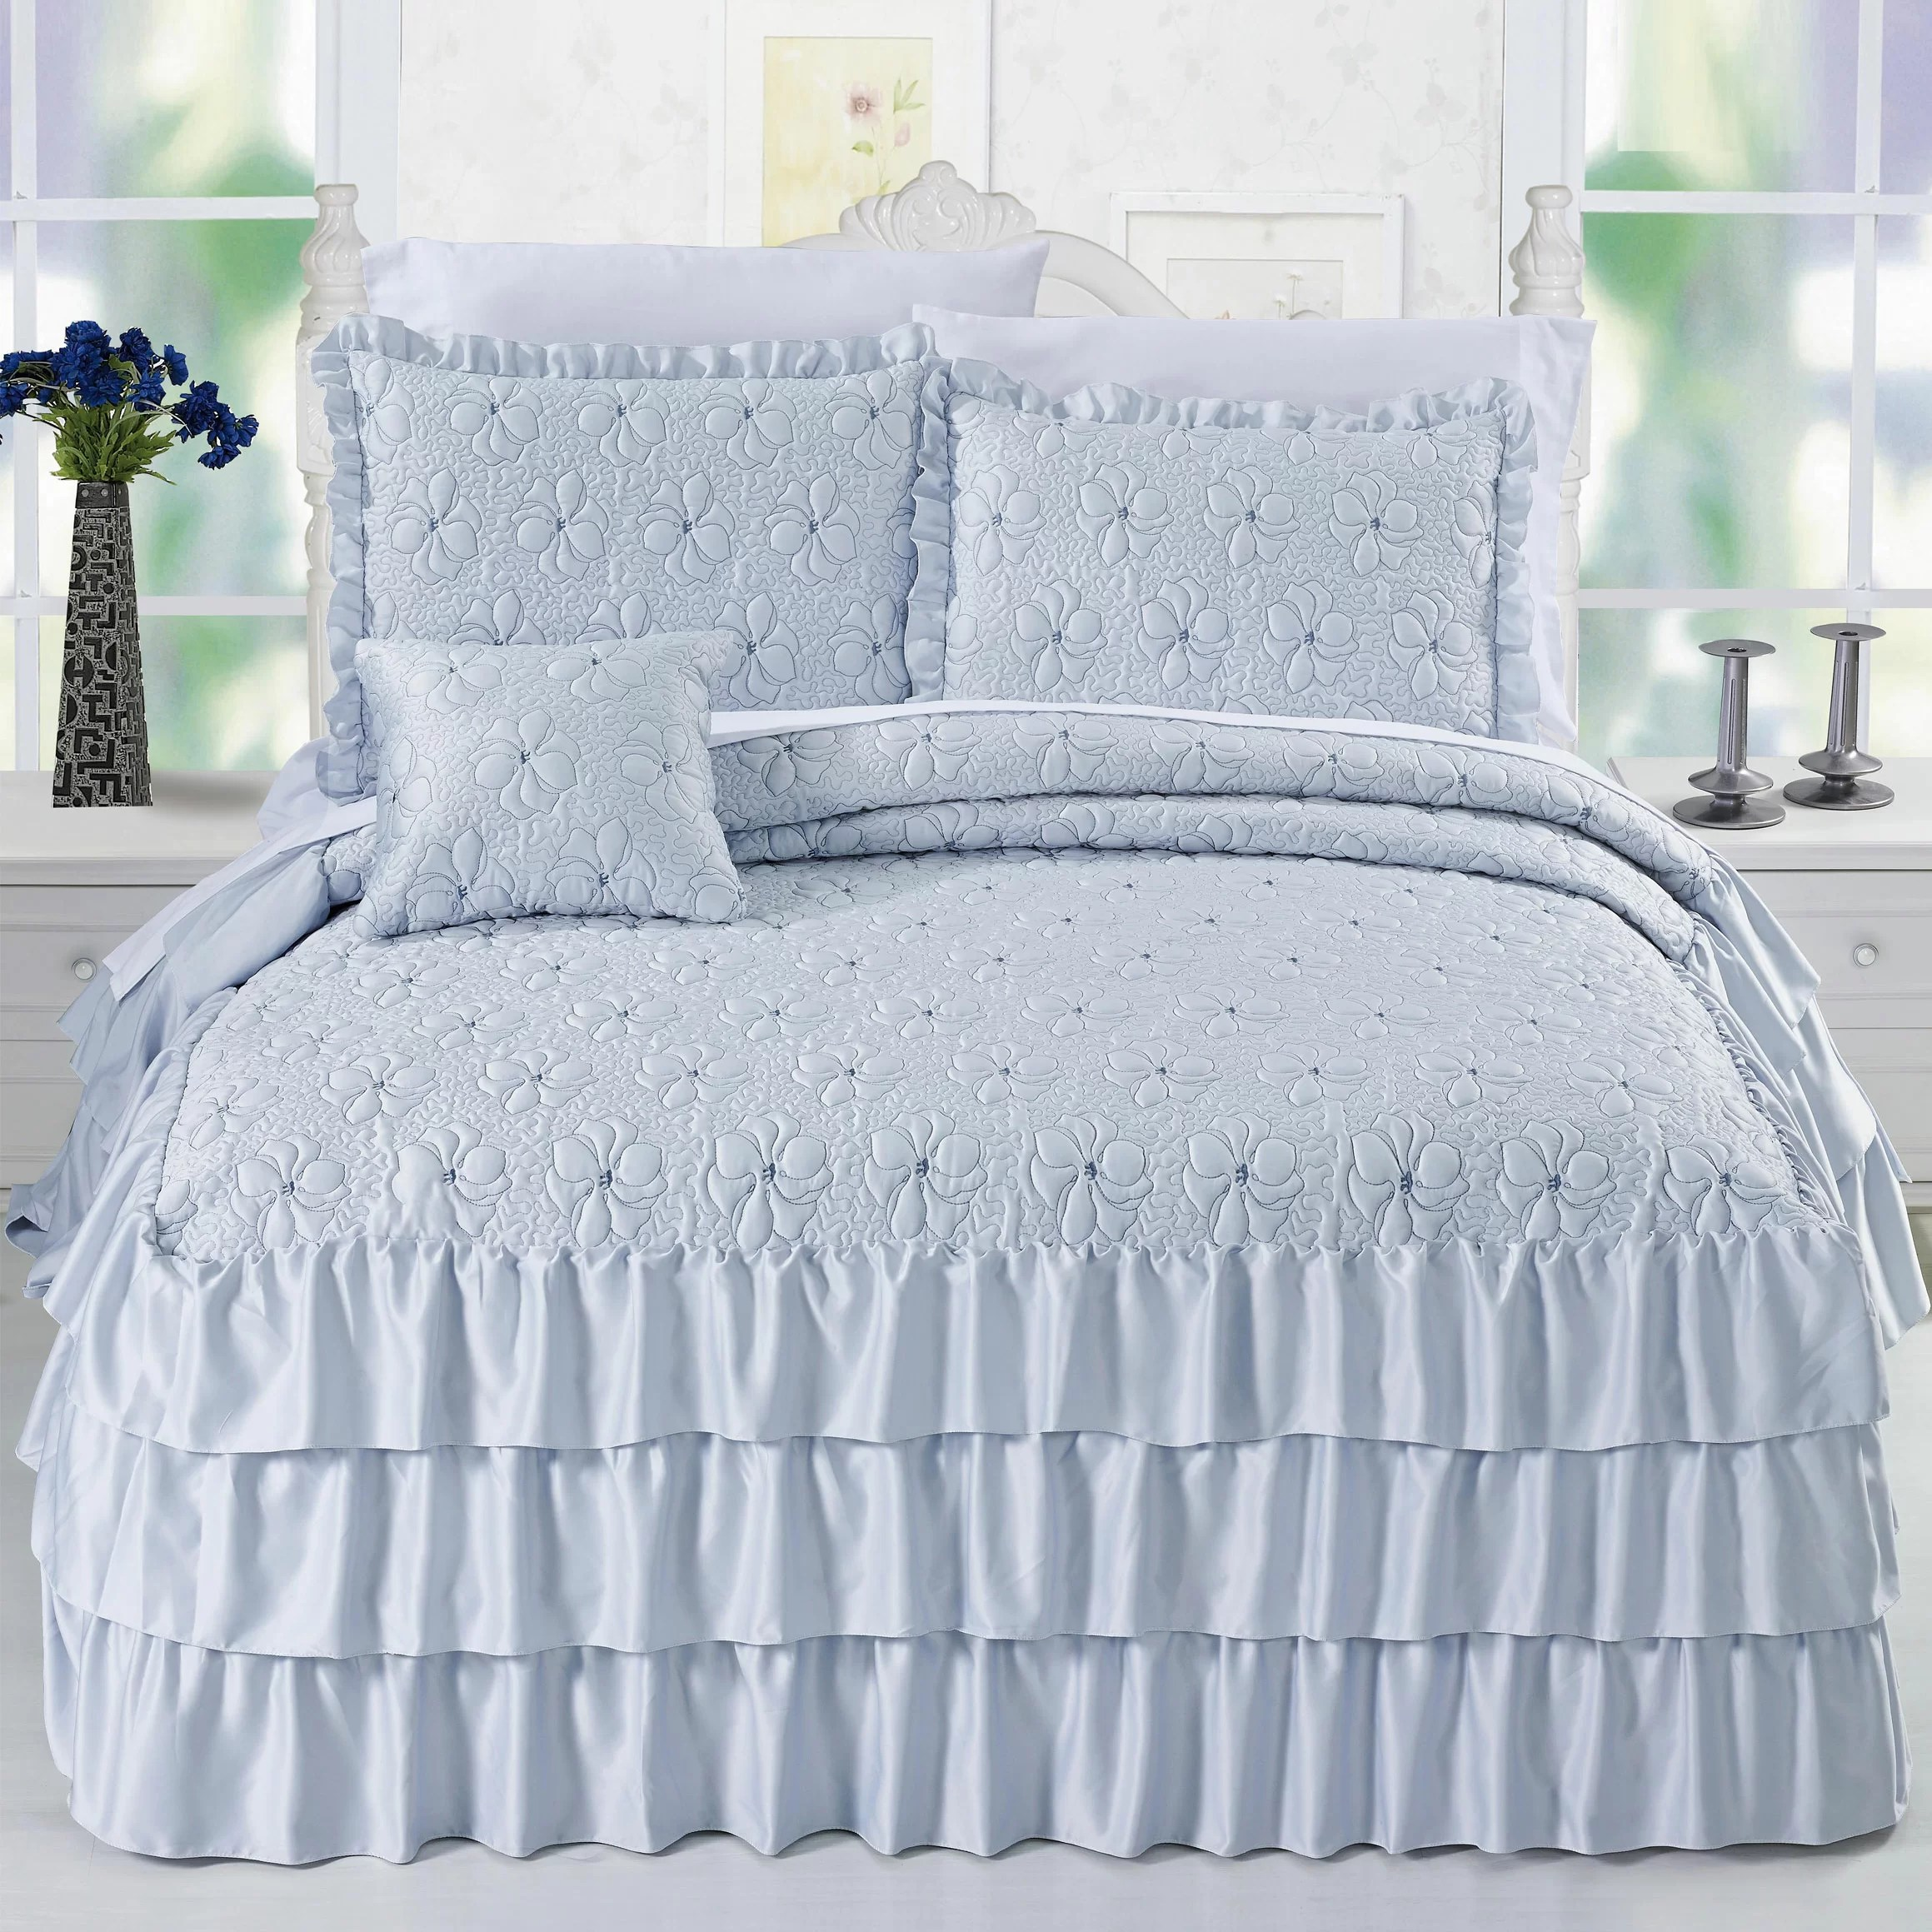 Satin Duvet Cover Reinhart Ruffle Matte Satin 4 Piece Coverlet Set